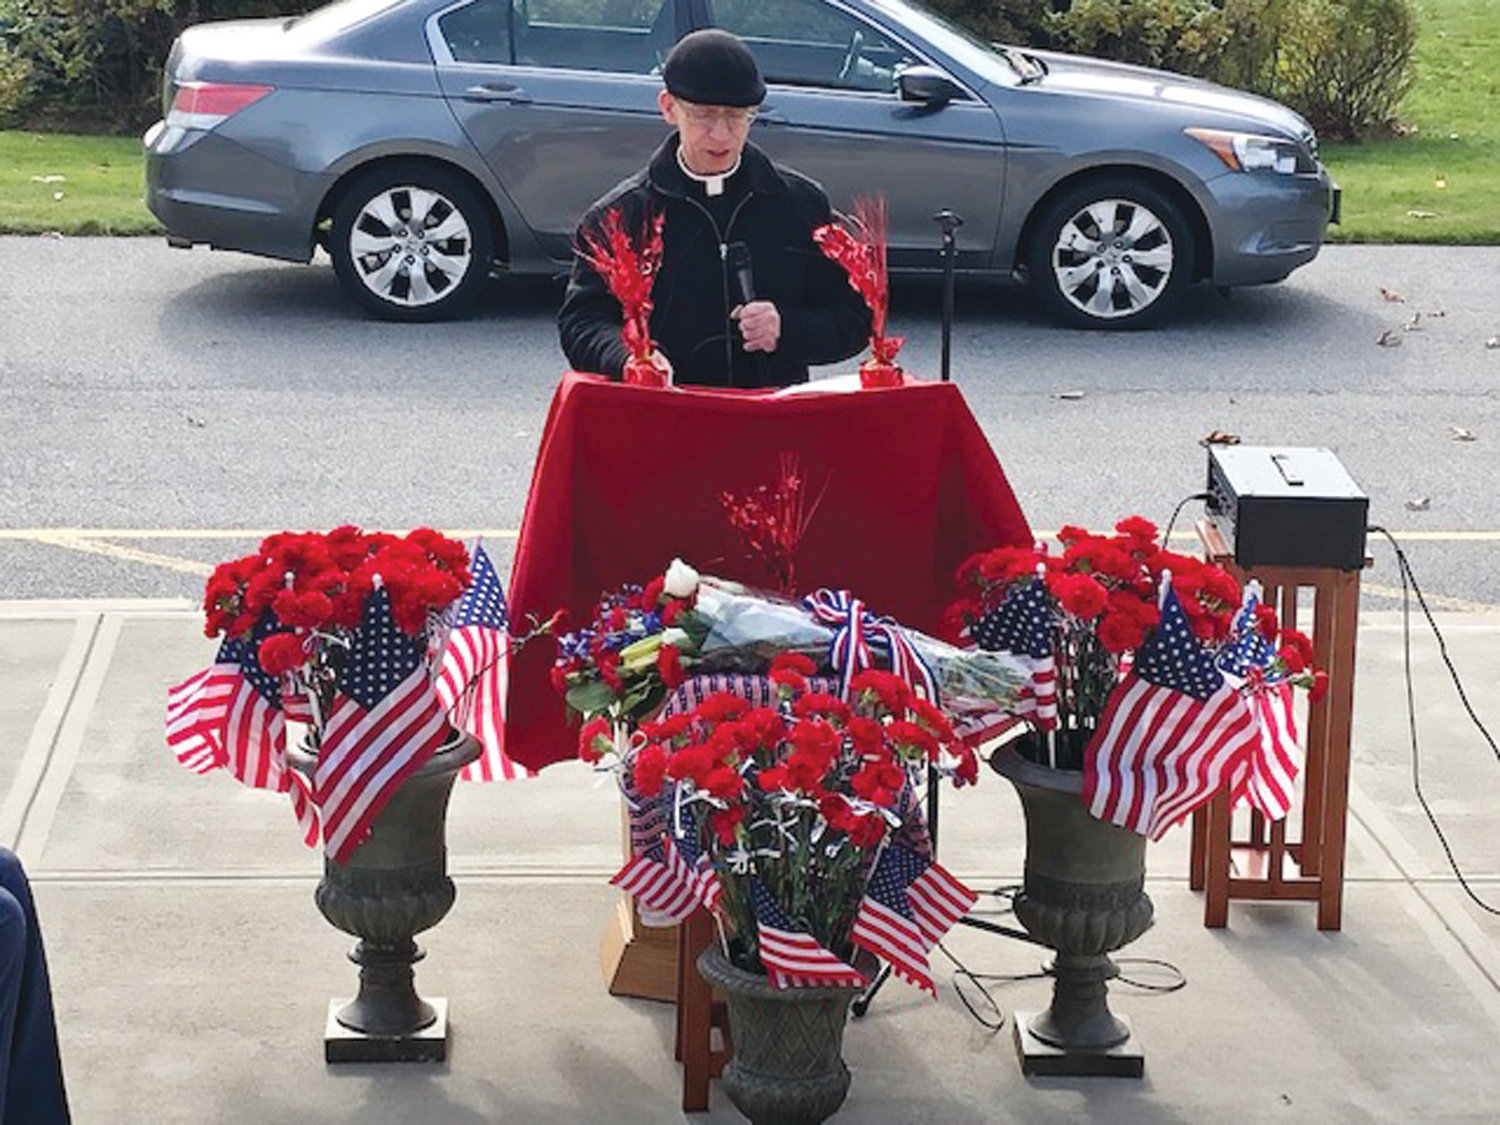 REMEMBERING VETERANS: Father Andrew Messina read the names of veterans from the steps of Saints Rose and Clement Church following Mass on Sunday.